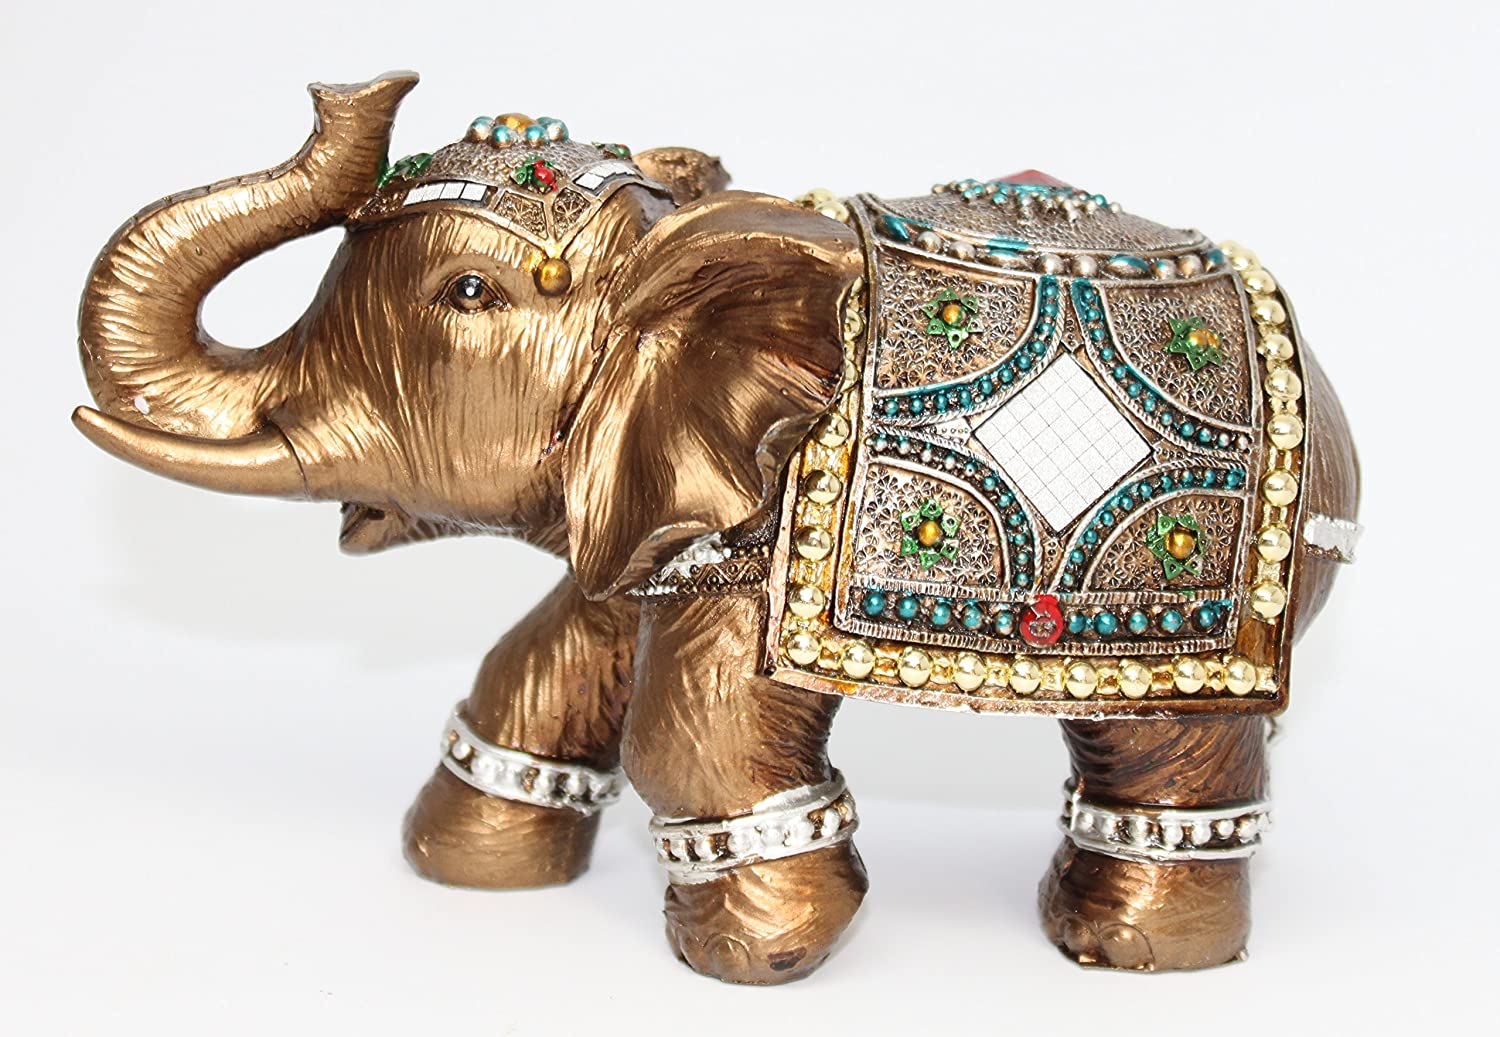 Amazon Com Feng Shui Brass Color 6 Elegant Elephant Trunk Statue Wealth Lucky Figurine Home Decor Gift Us Seller 14832 Home Kitchen